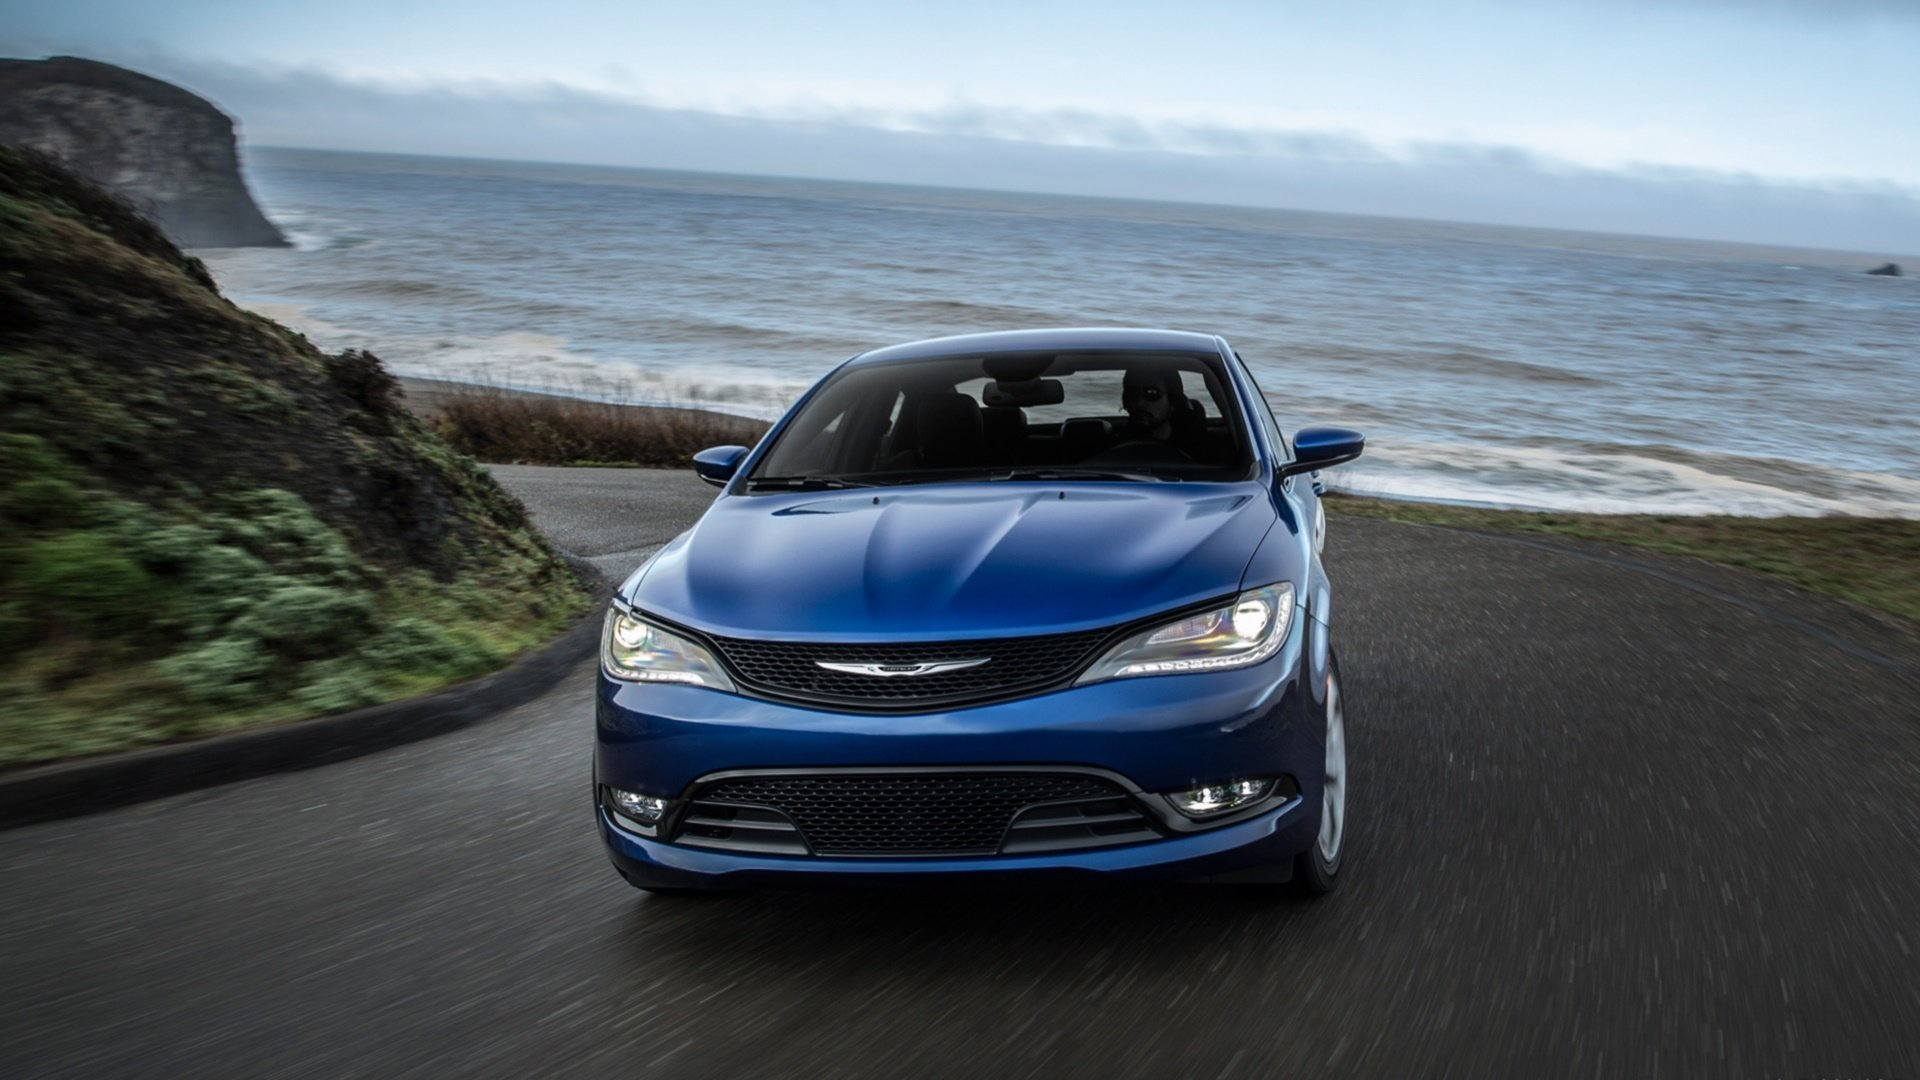 2015 Chrysler 200 Car HD Wallpapers HD Wallpapers 1920x1080